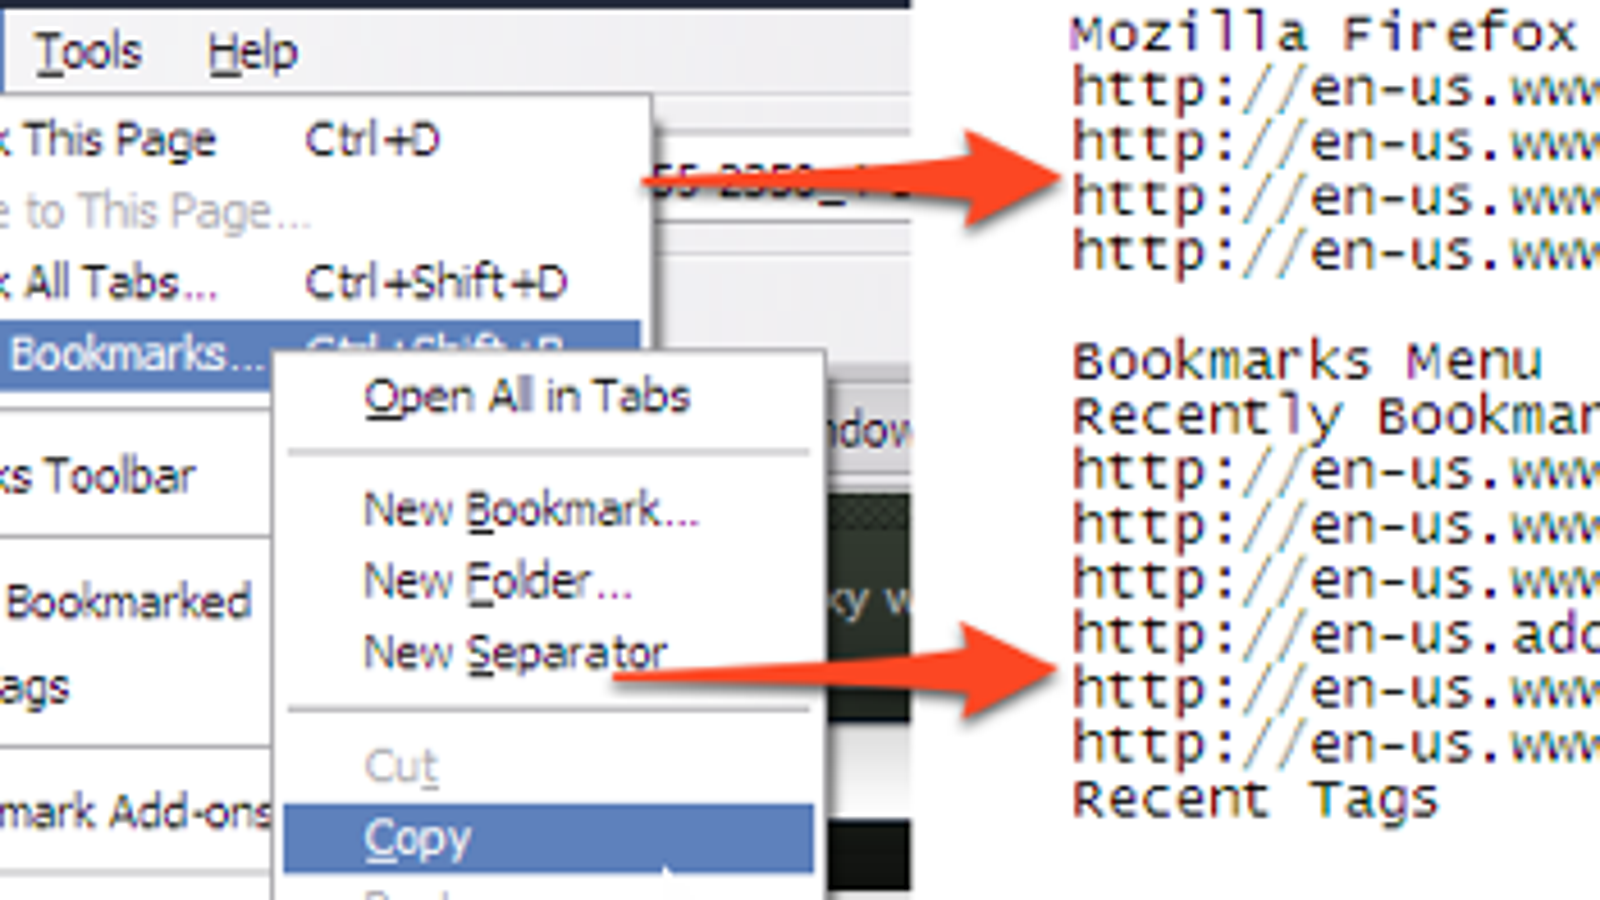 Quickly Copy and Paste Your Firefox Bookmarks